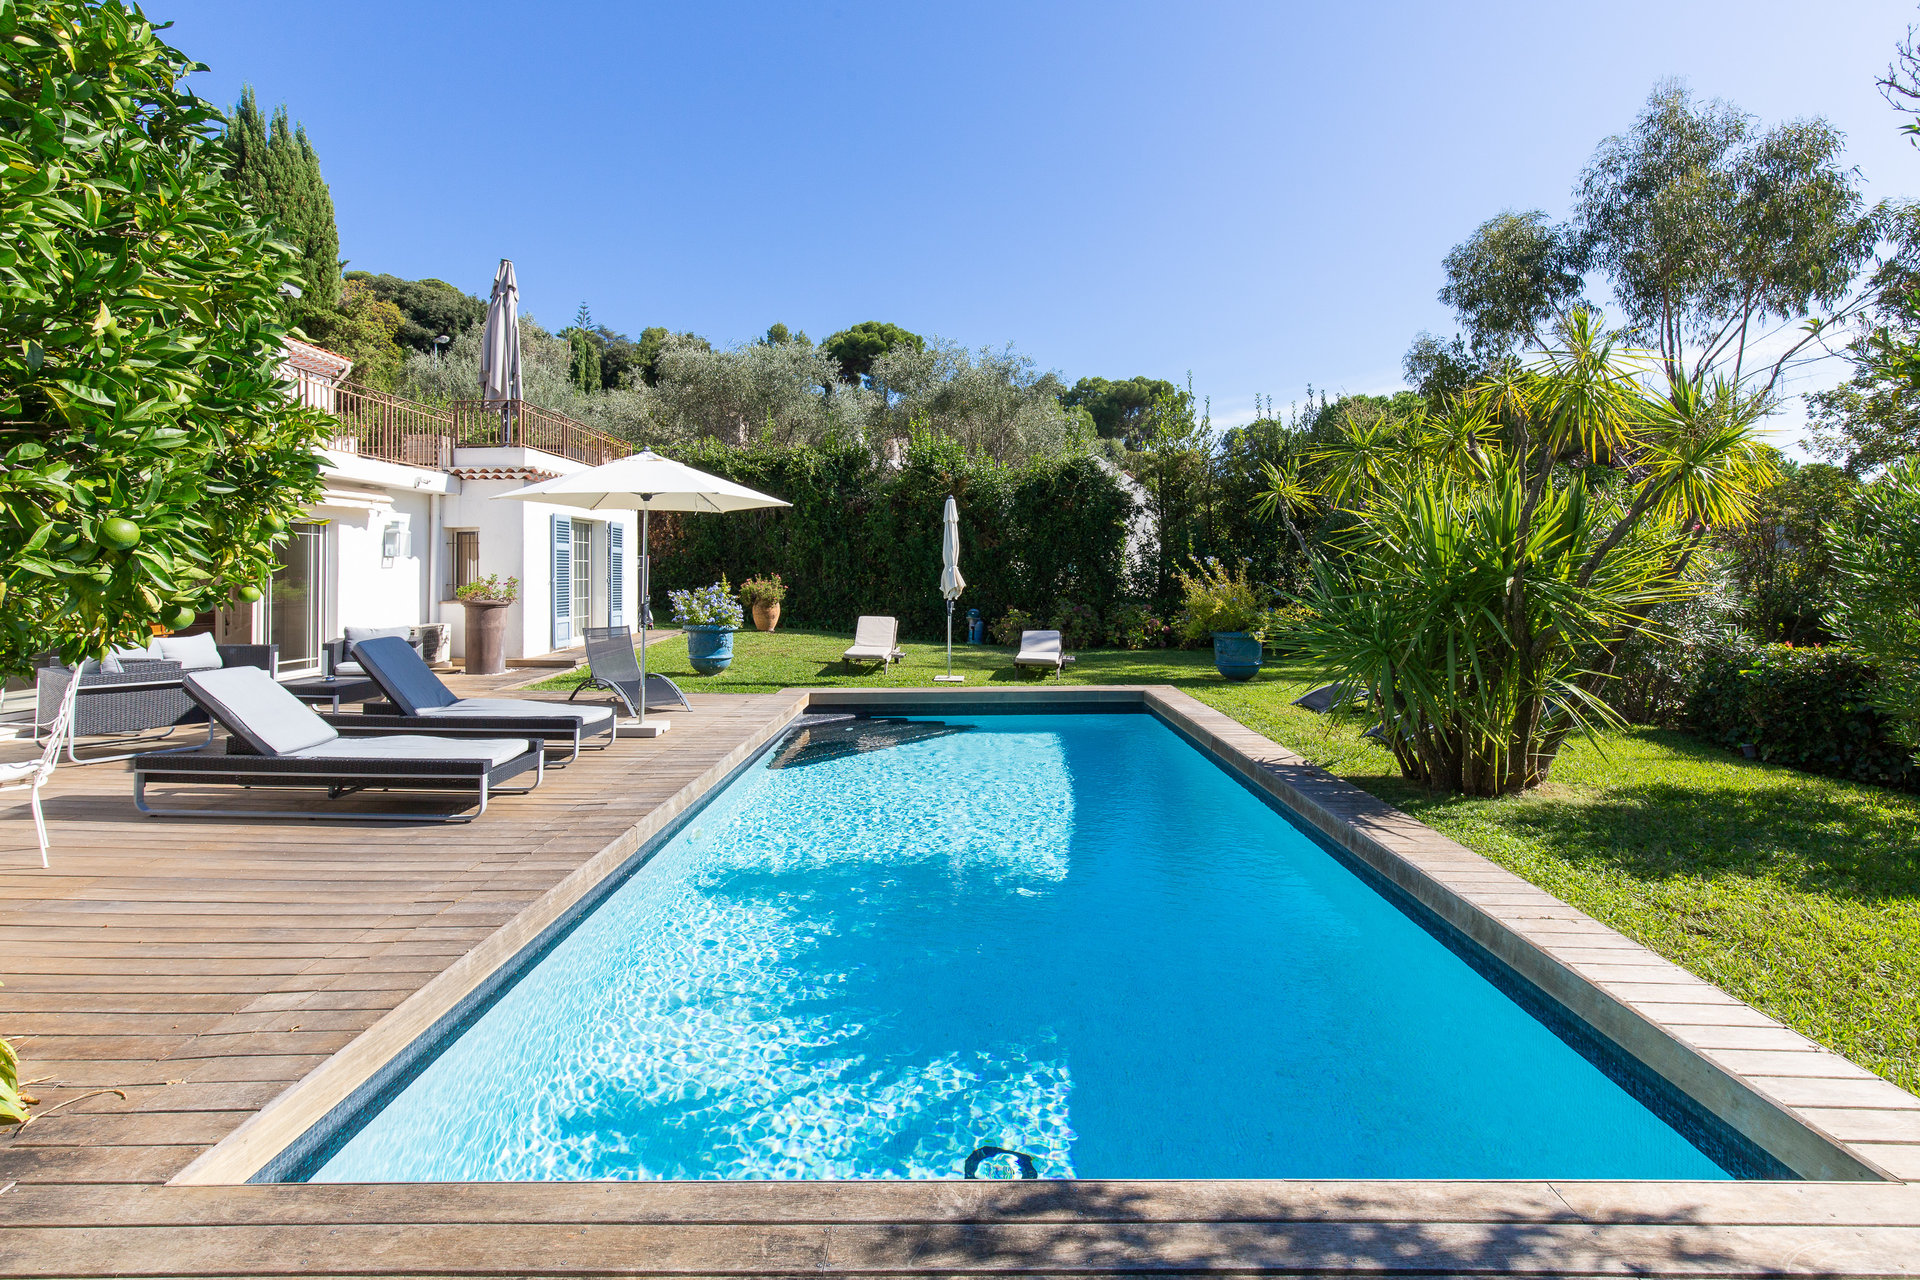 Le Cannet / Splendid House 285 sqm with swimming pool